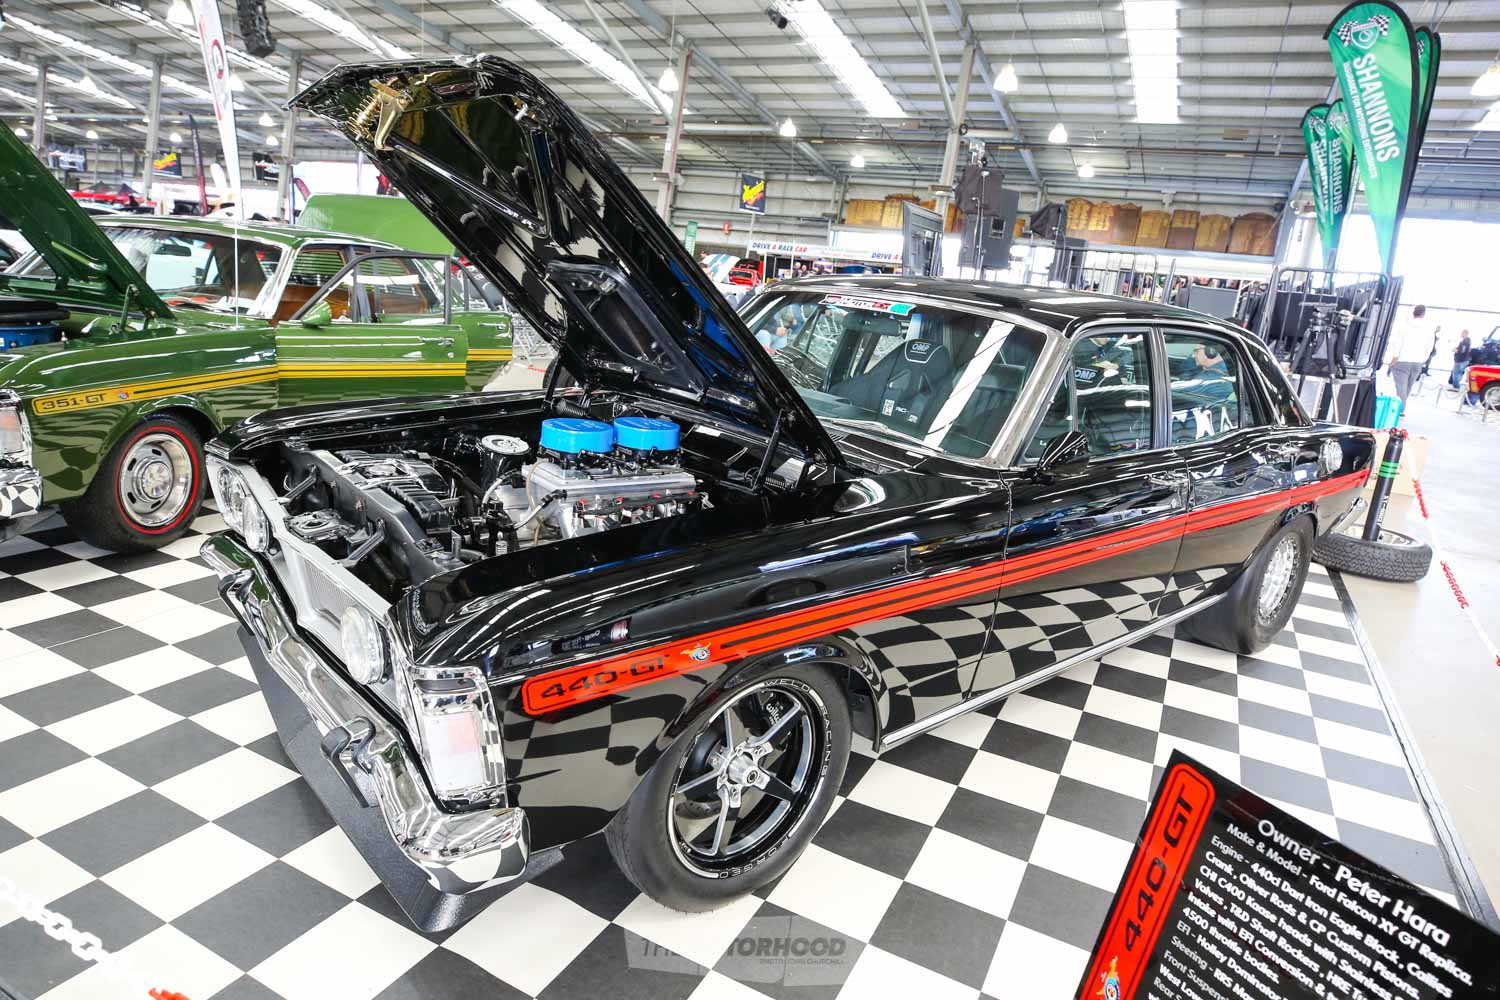 Best Modifies Muscle Peter Hara Ford Falcon GT.jpg